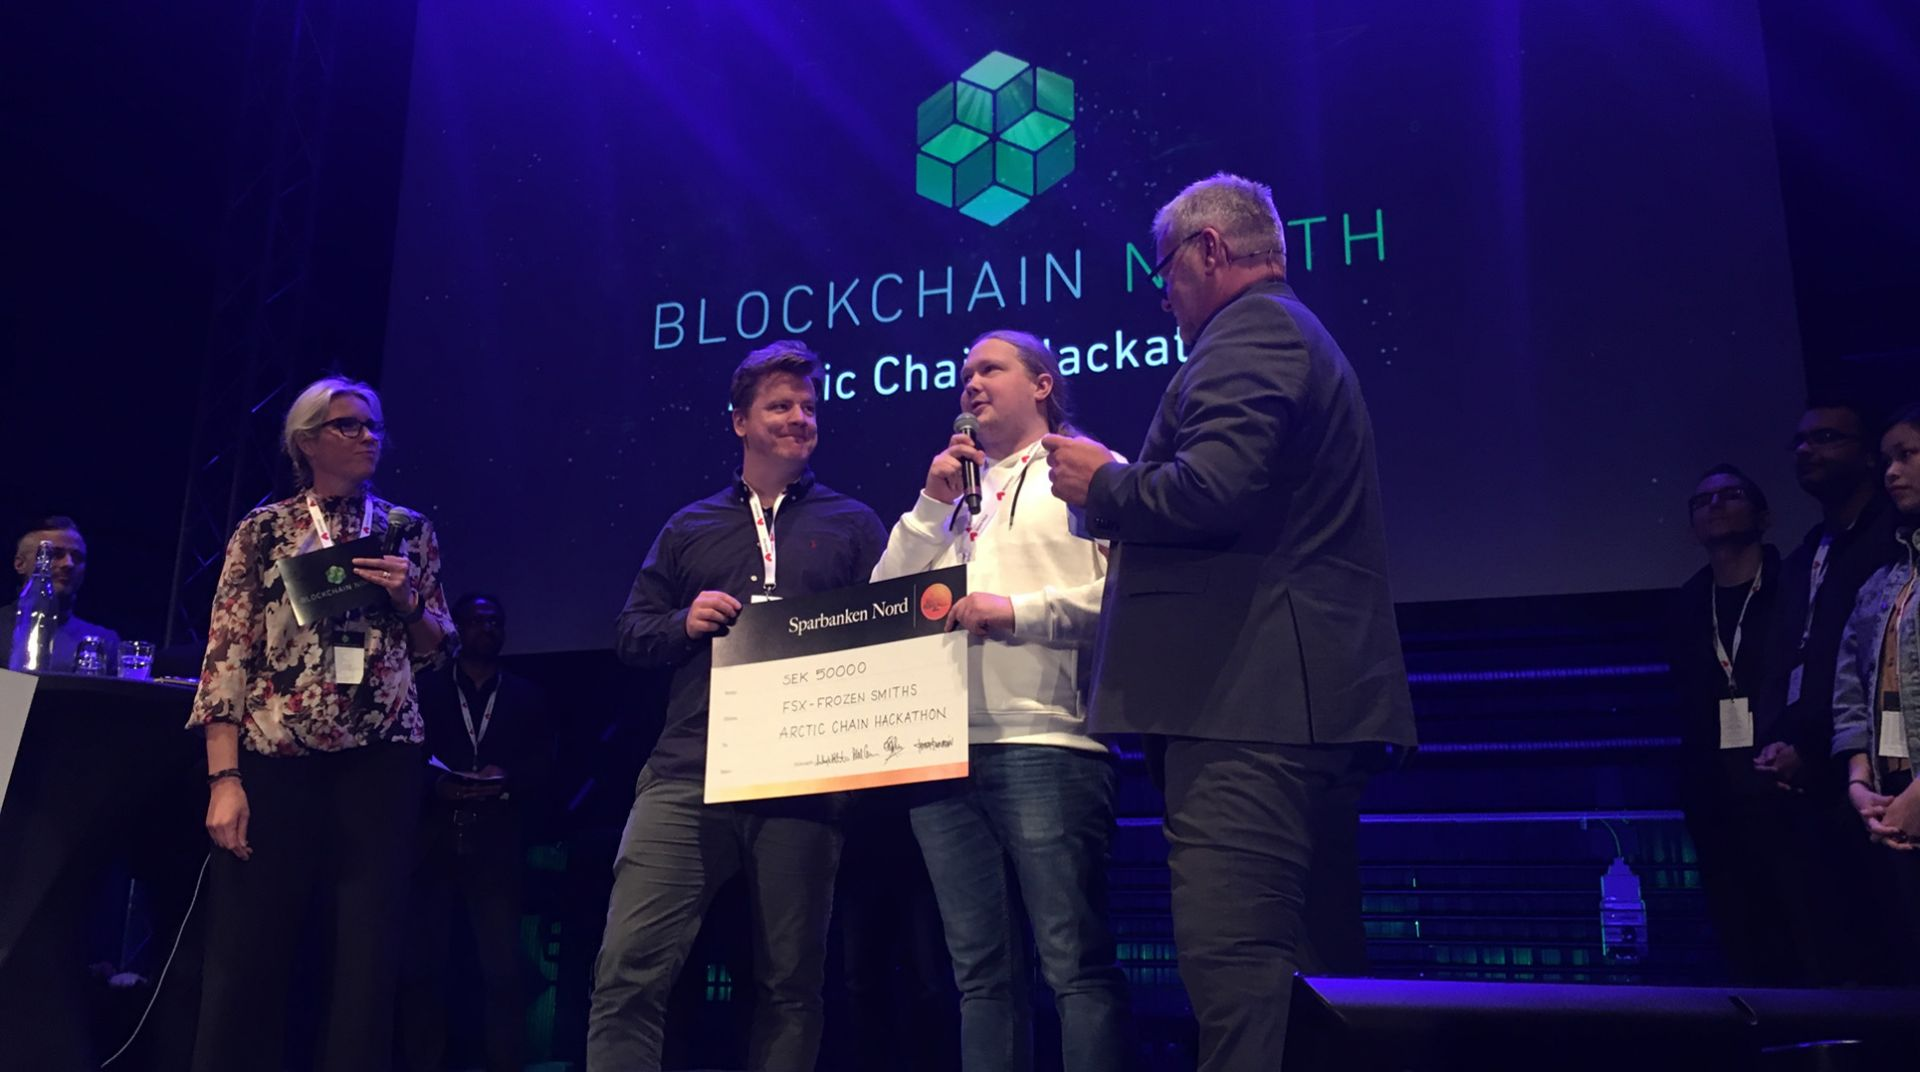 Thanks for Blockchain North and Arctic Chain Hackathon!